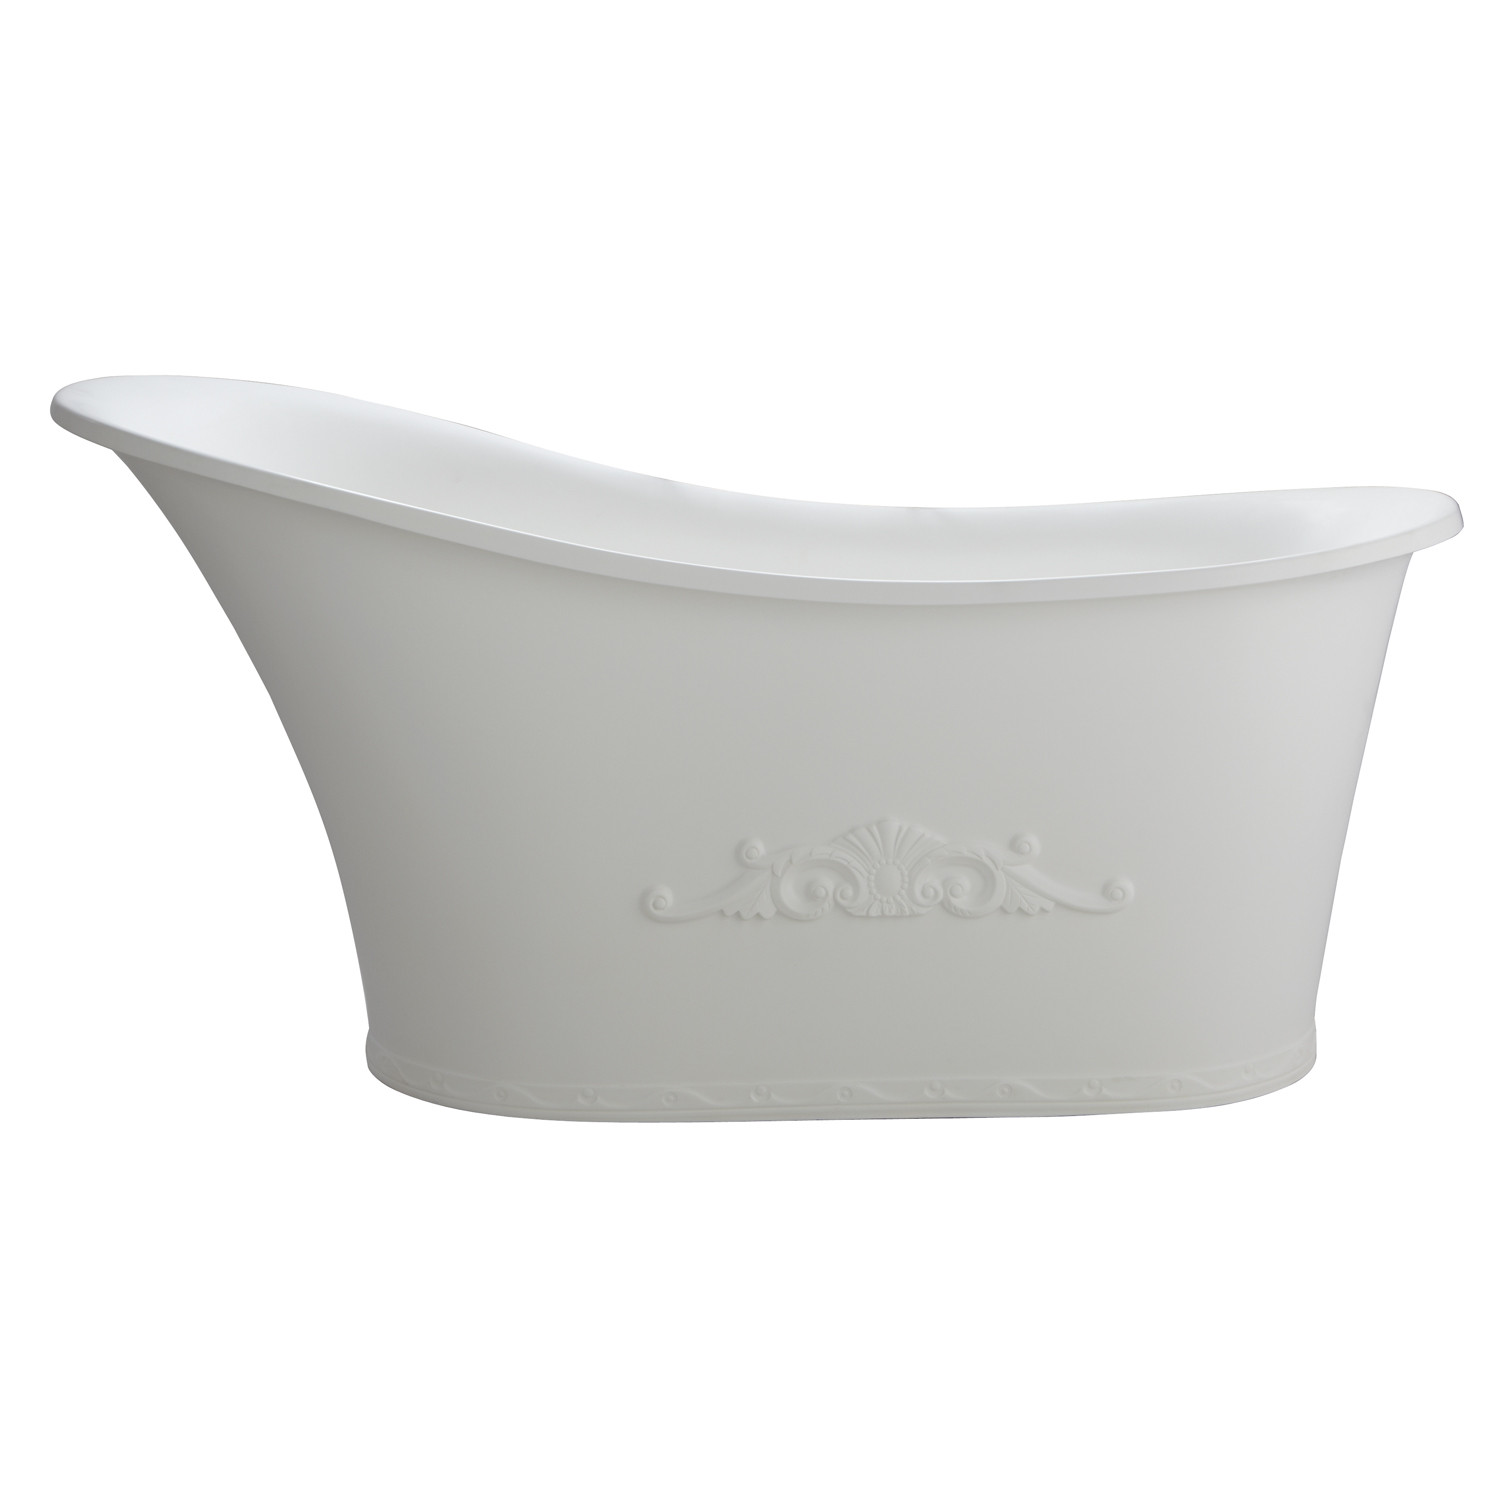 Barclay RTSN59-WH Ayanna Resin Slipper Free Standing Tub In Matte White